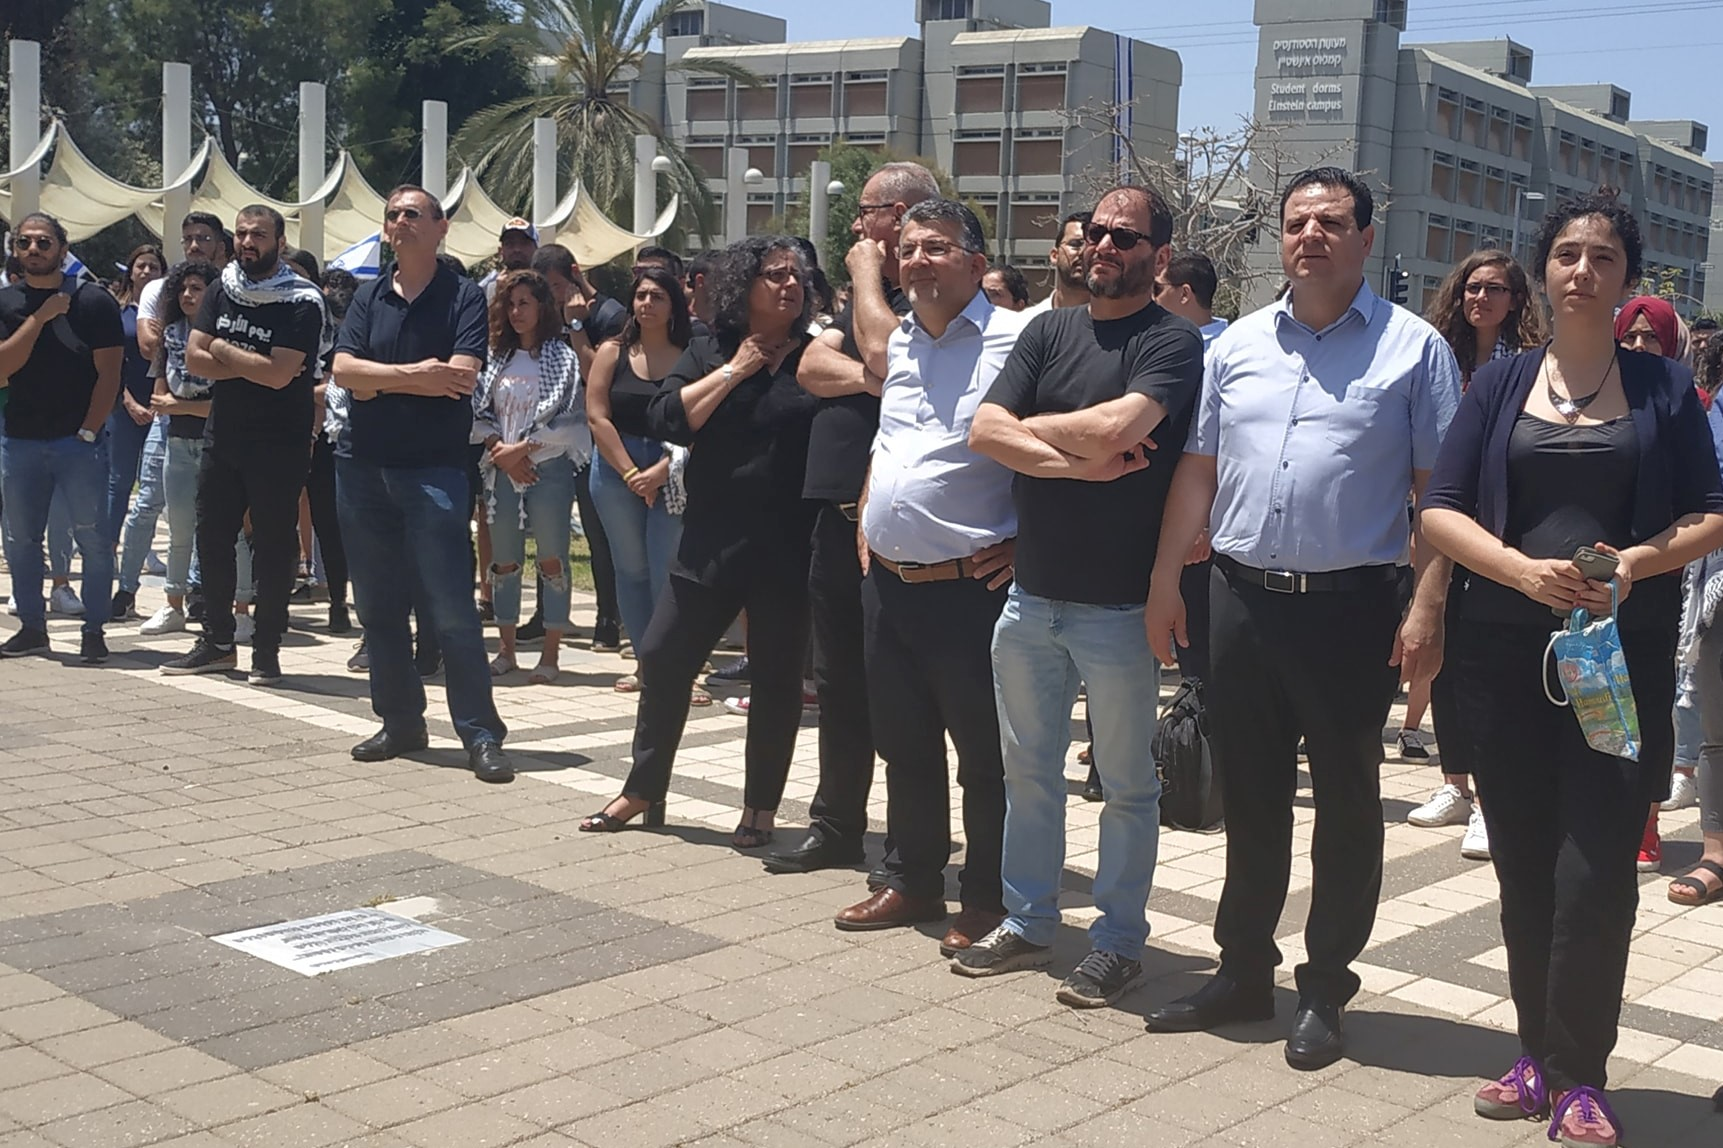 Nakba Day commemoration ceremony held last Wednesday, May 15, at the main entrance to Tel Aviv University. Participating in the event were all four current Hadash MKs: Ayman Odeh, Aida Touma-Sliman, Ofer Cassif and Youssef Jabareen, as well as former Hadash MKs Mohammed Barakeh and Dov Khenin.